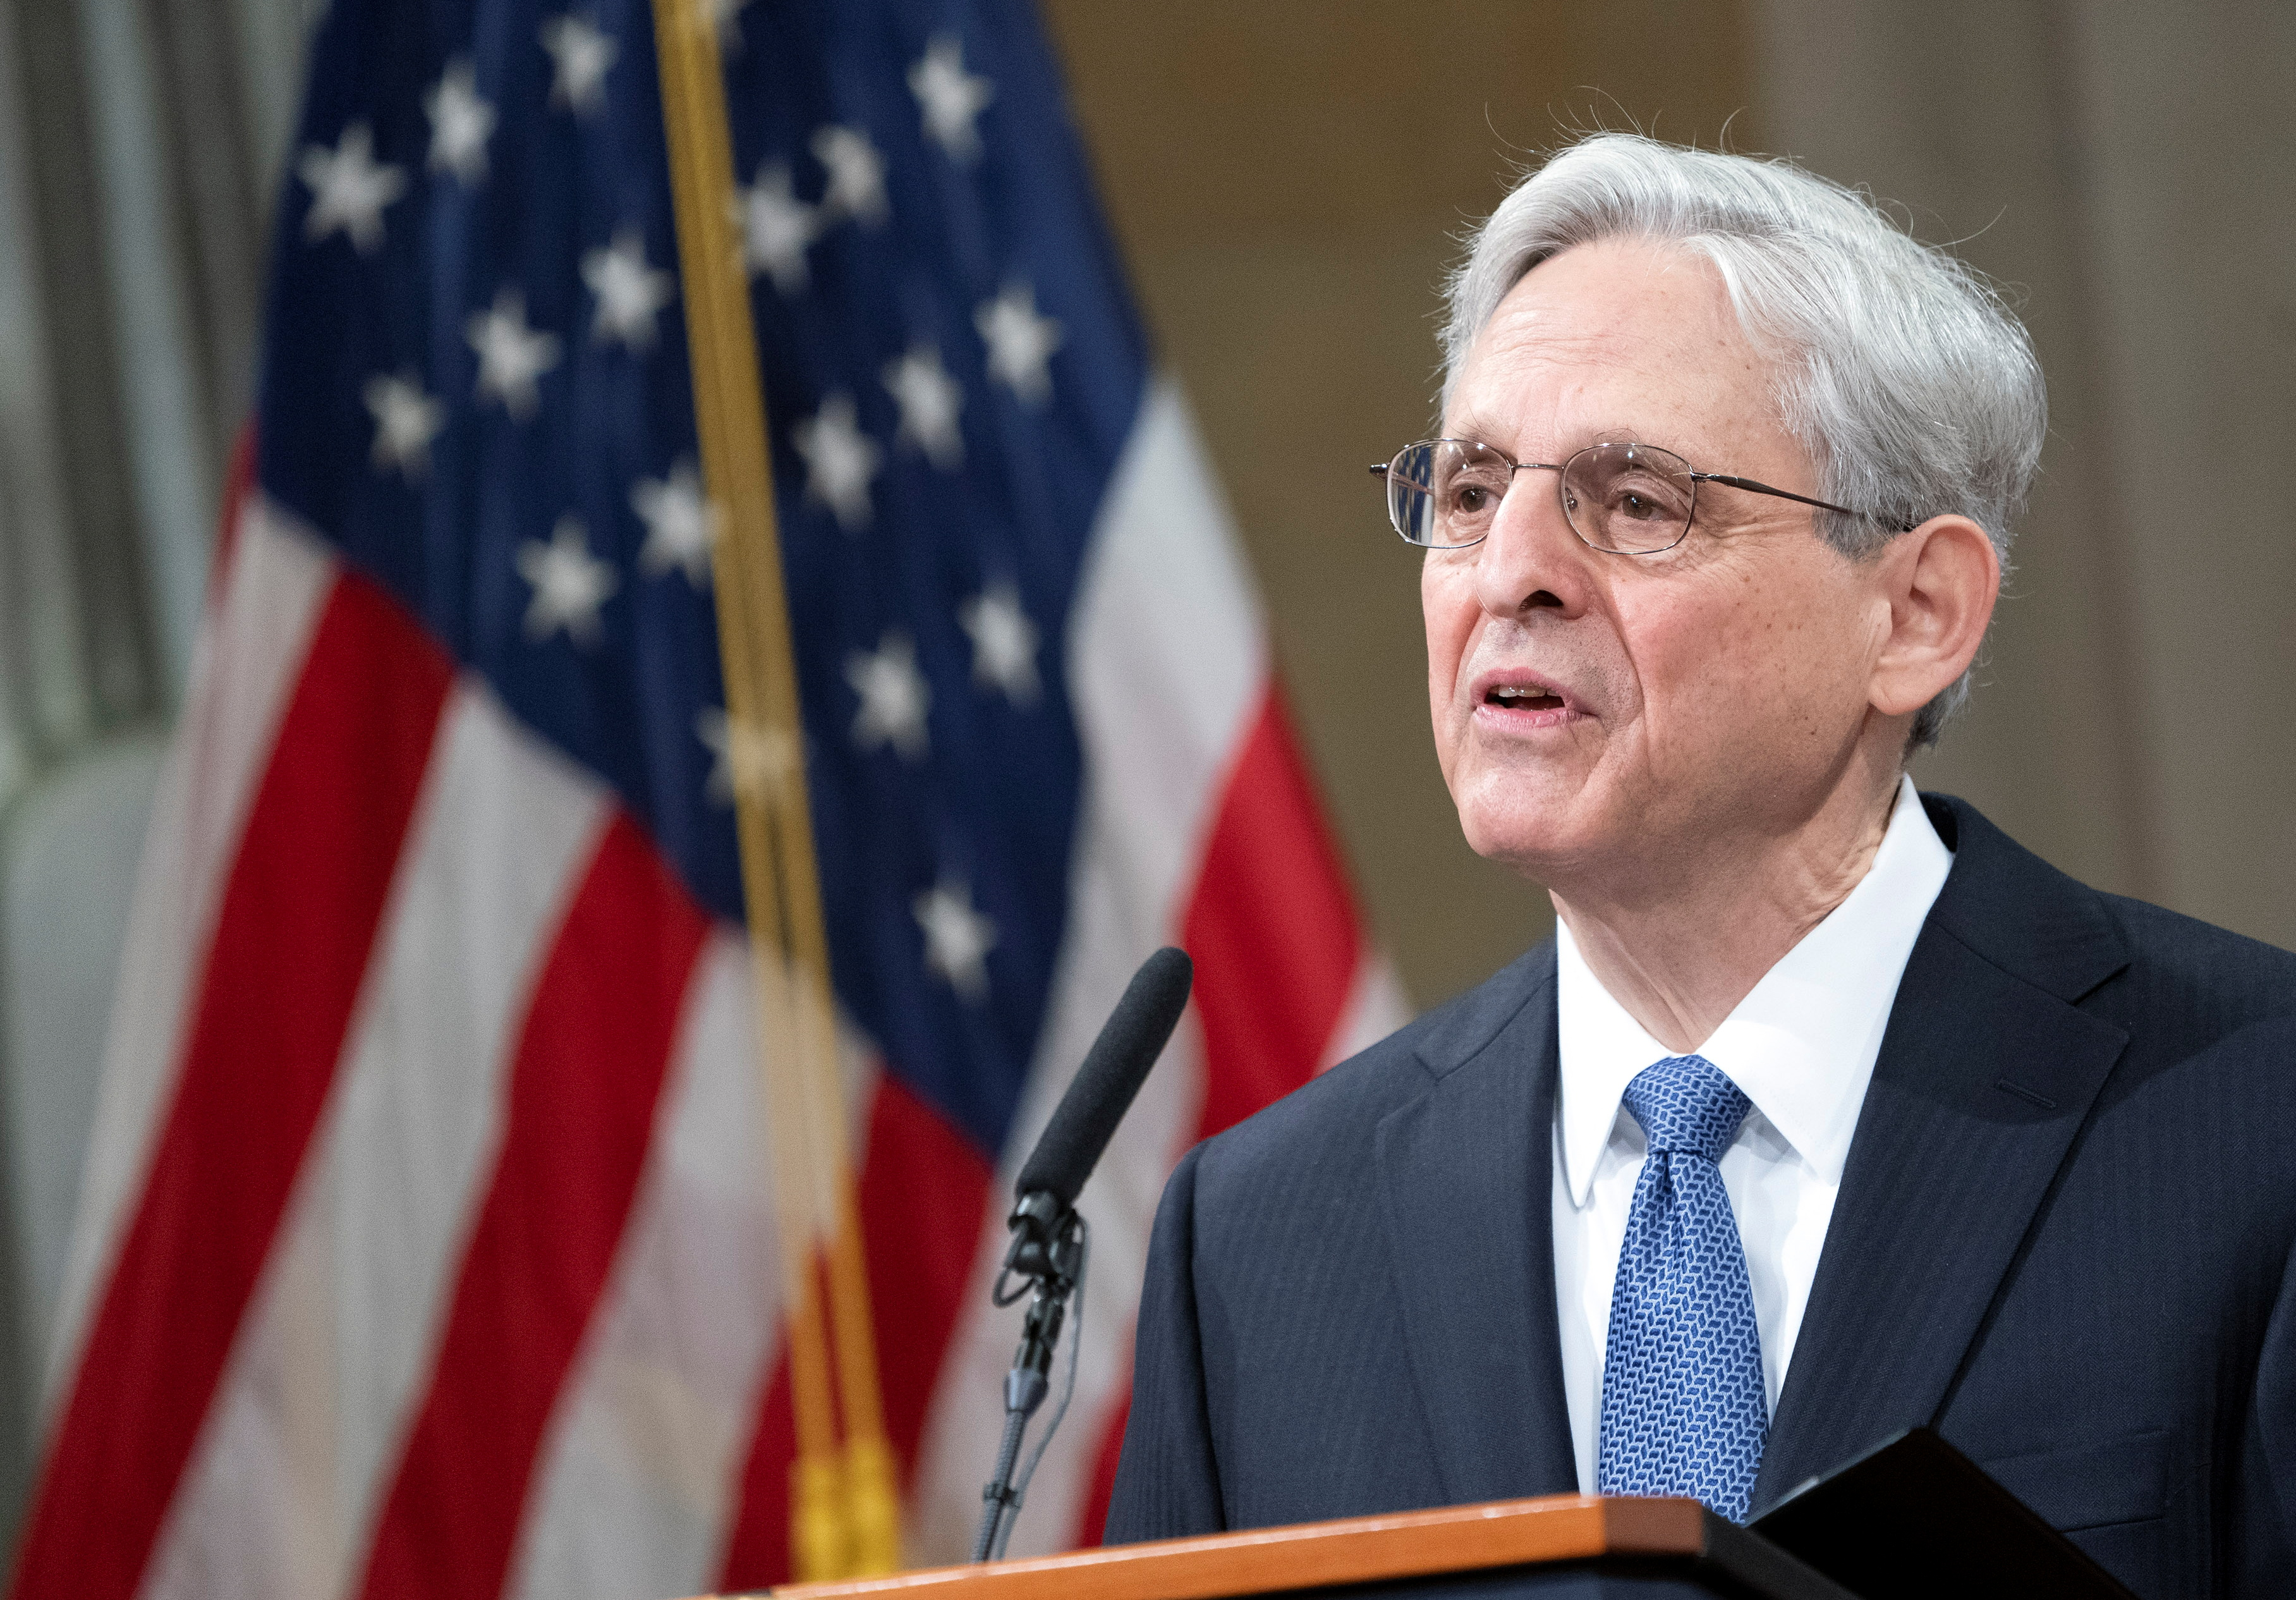 U.S. Attorney General Merrick Garland addresses staff on his first day at U.S. Department of Justice in Washington, DC, U.S. March 11, 2021. Kevin Dietsch/Pool via REUTERS